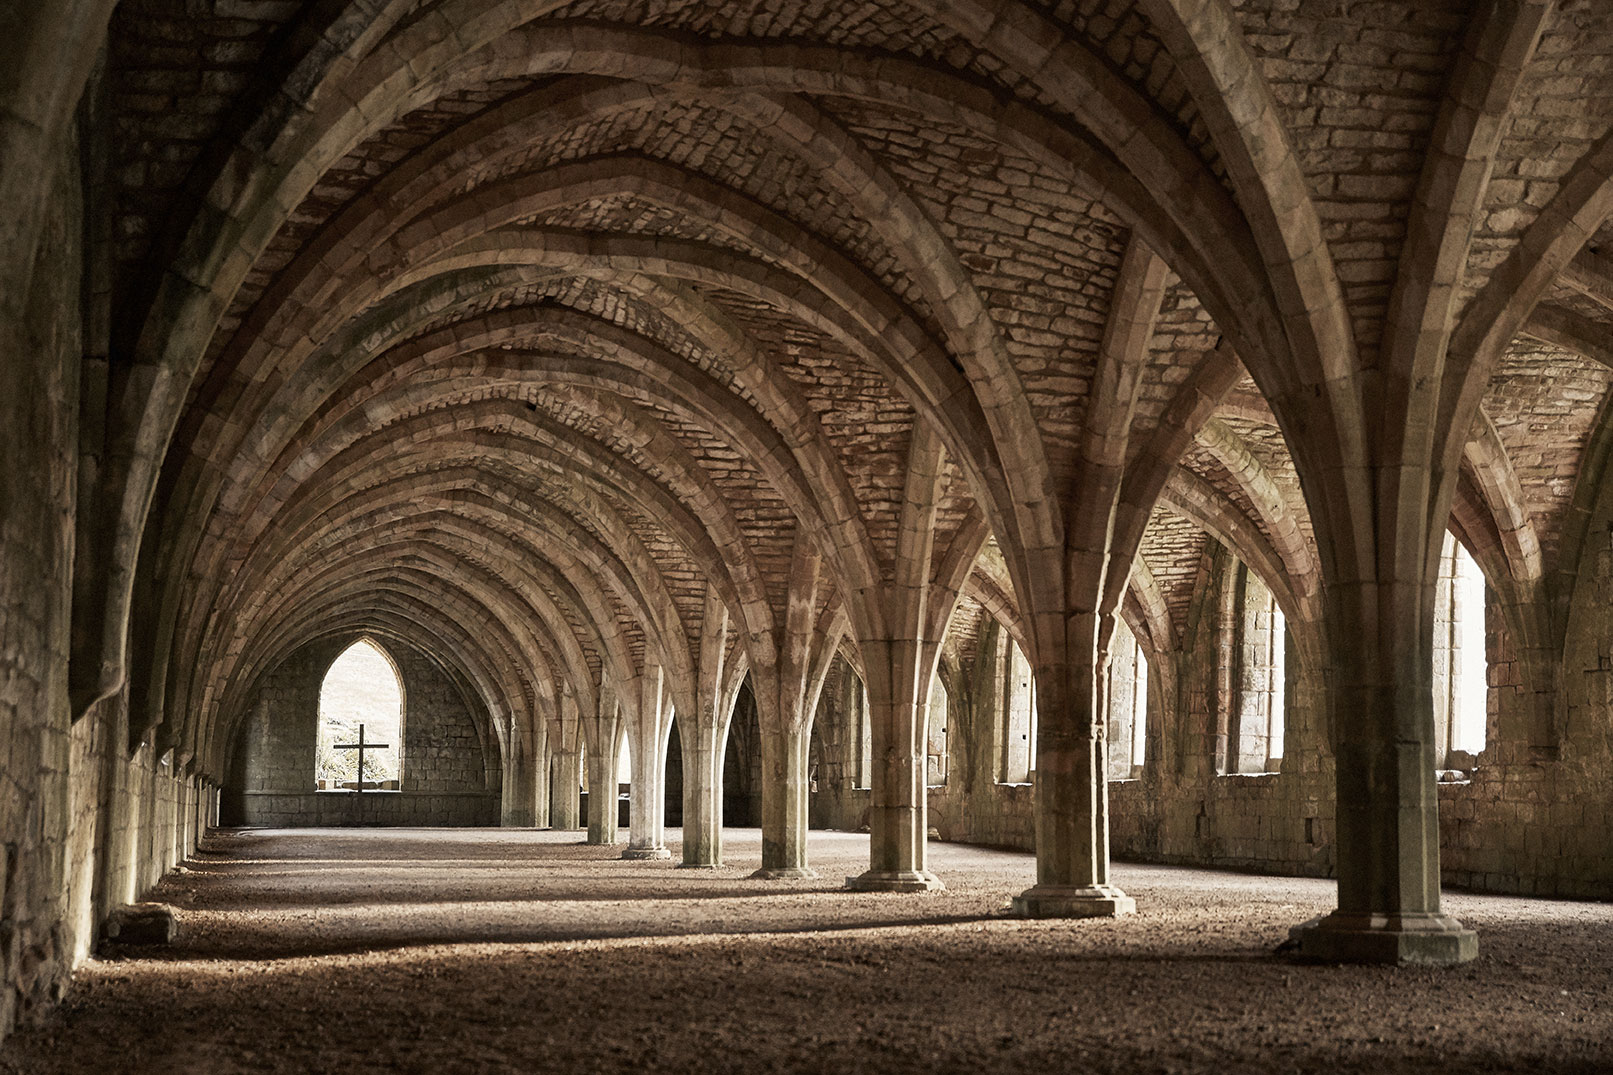 2019_10_07_TL_YORKSHIRE_FOUNTAINS_ABBEY_026_RT